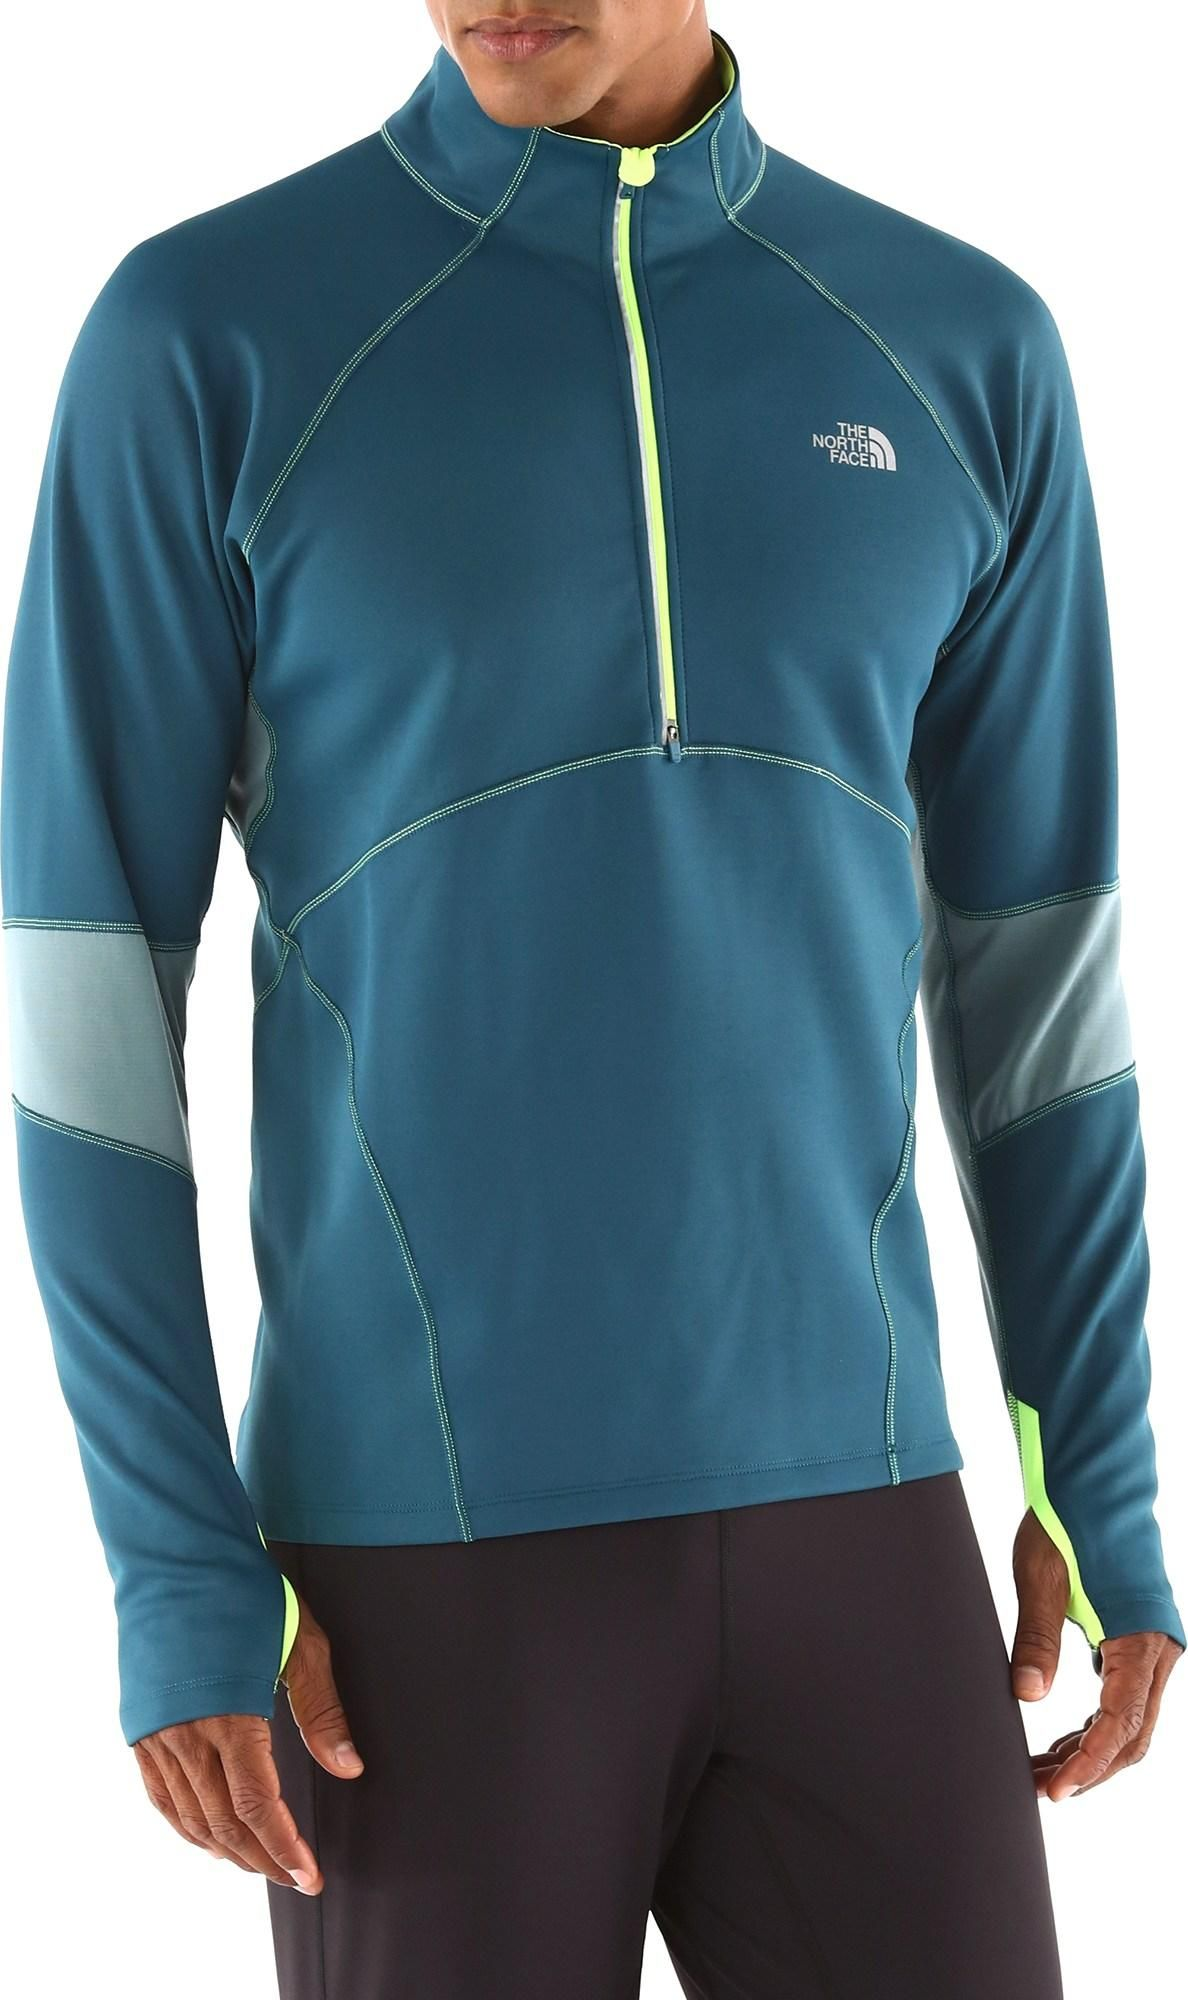 aef2a36aa The North Face Momentum Thermal Half-Zip Top - Men's | REI Co-op ...